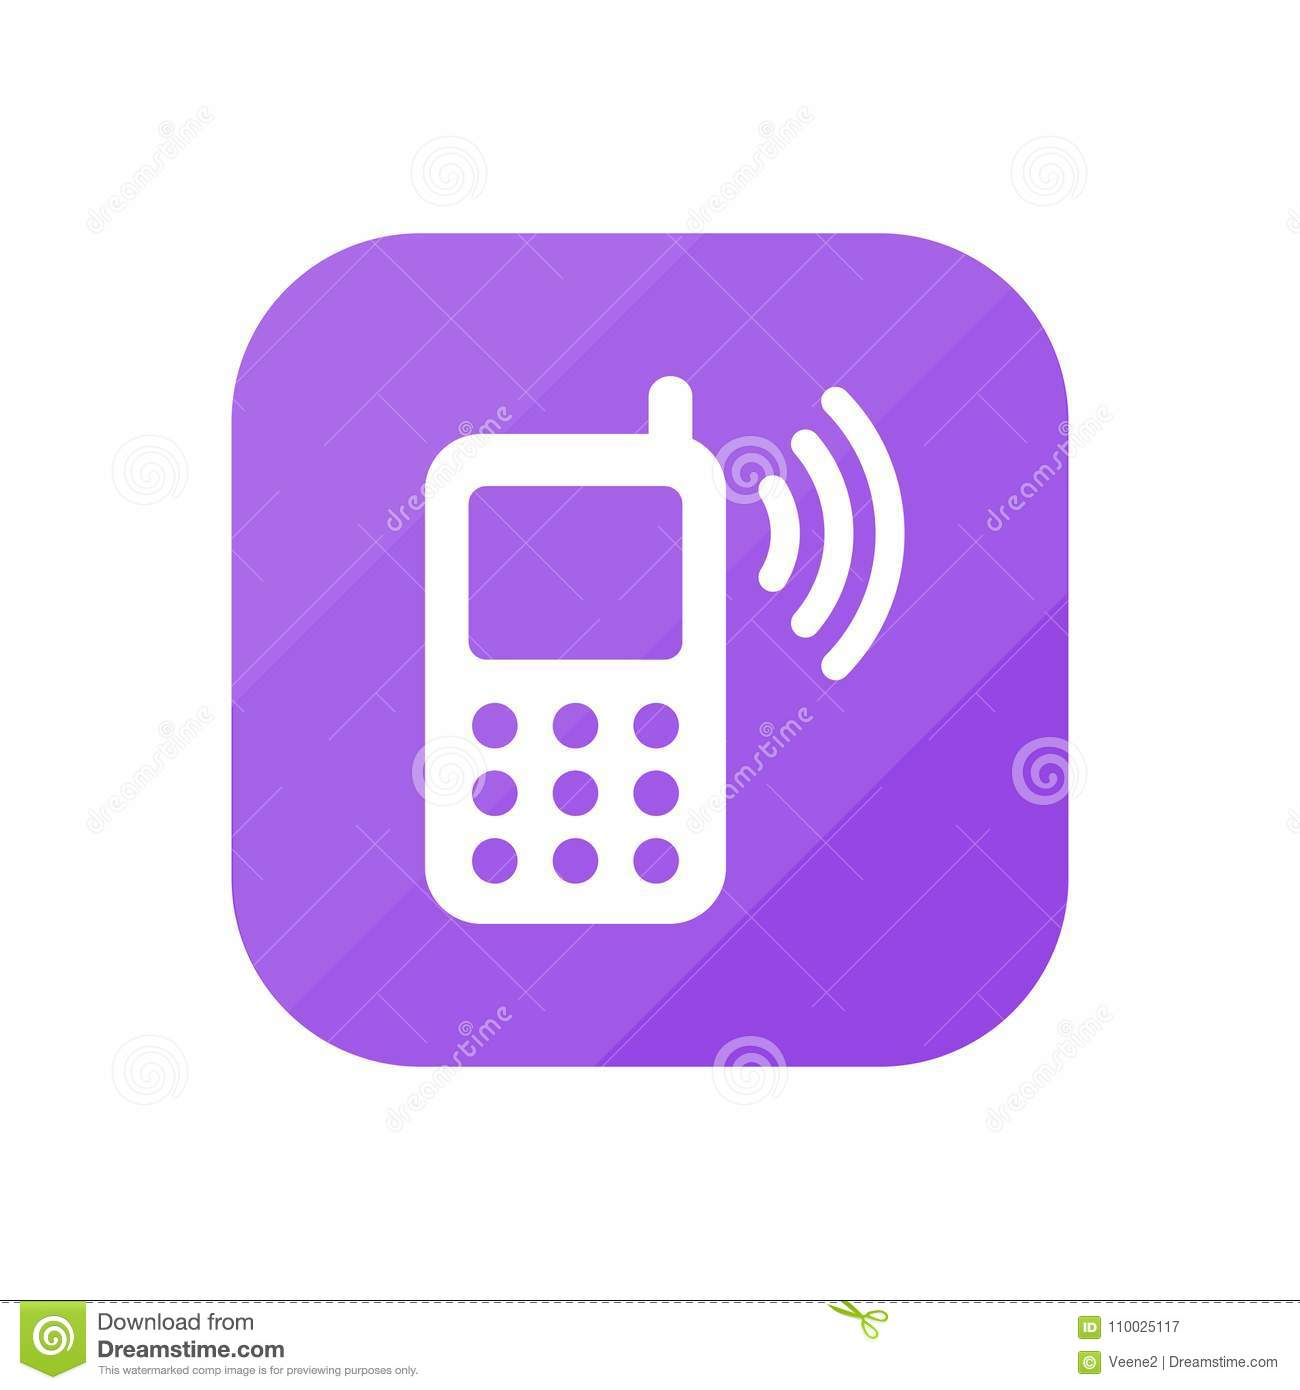 Cellphone die - App Pictogram bellen